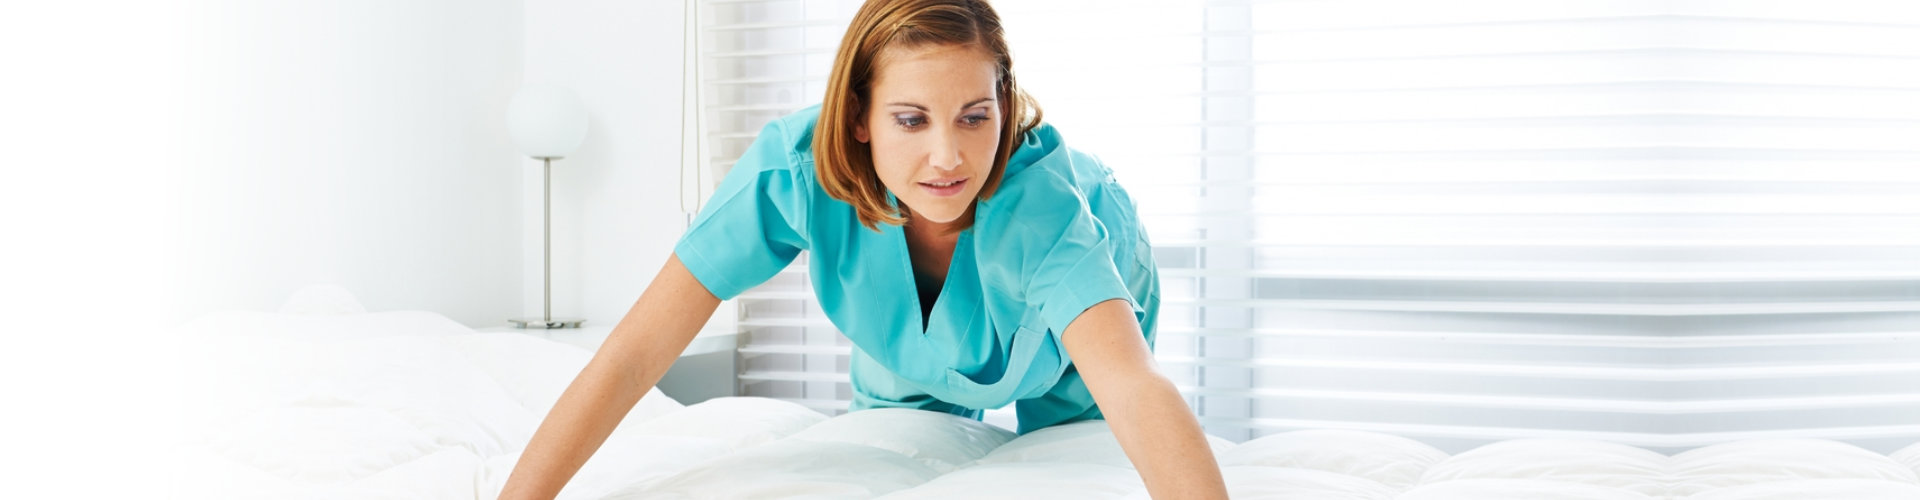 caregiver fixing the bed